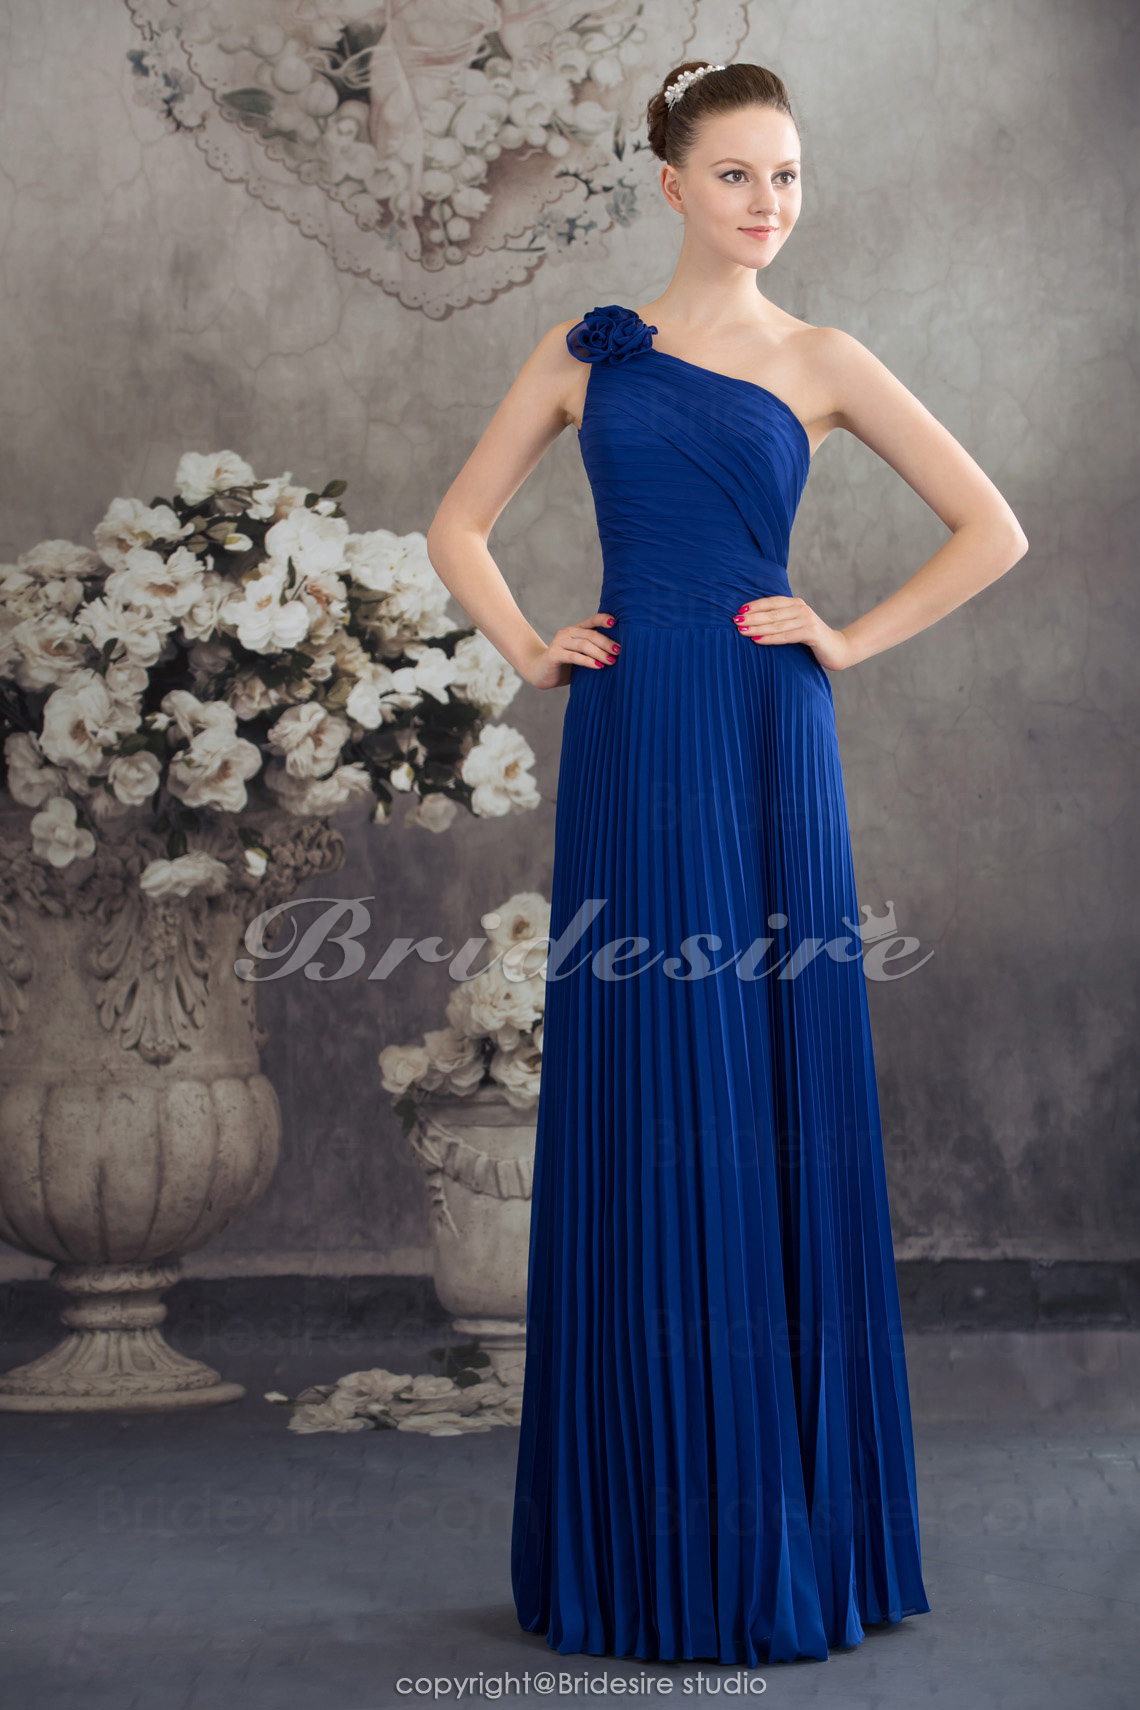 Sheath/Column One Shoulder Floor-length Sleeveless Chiffon Bridesmaid Dress